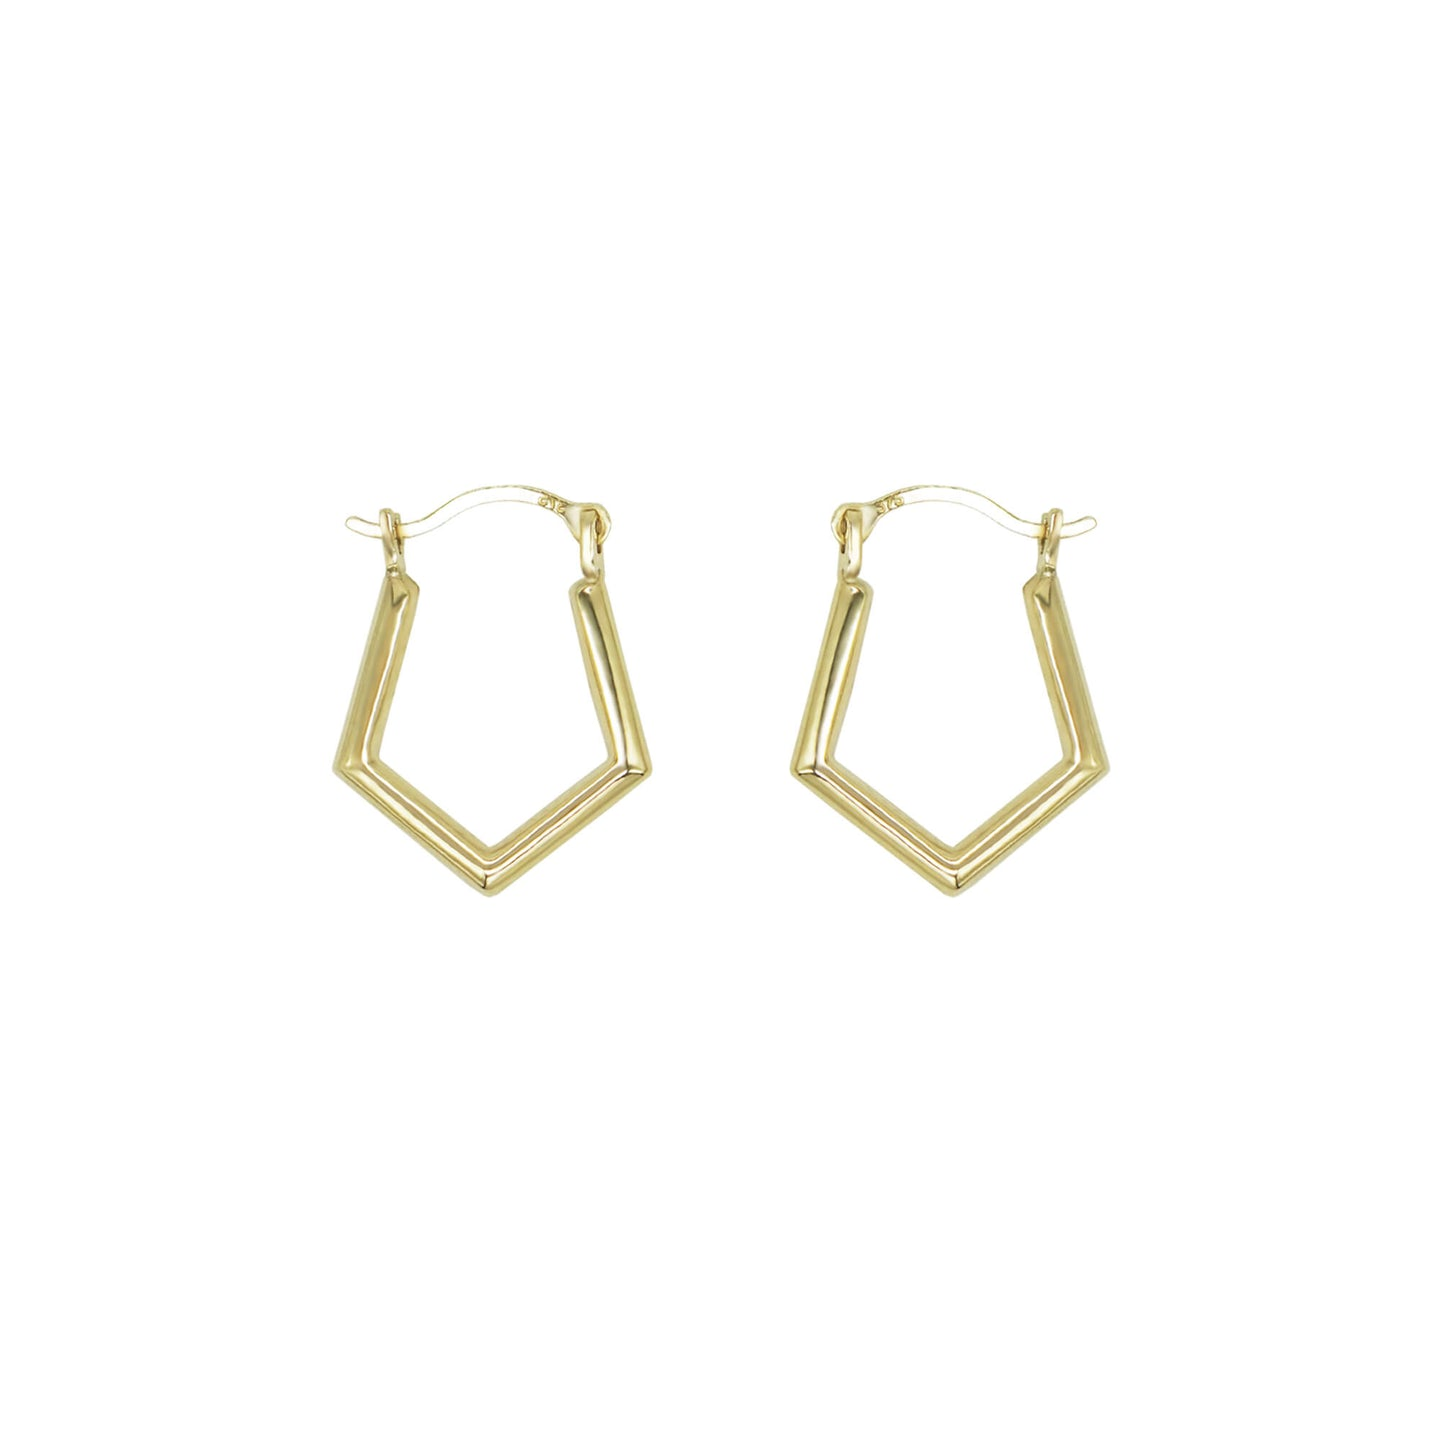 Pair of small 15mm 9K Gold Fine Angle Pointed Hoop Earrings, with hinge fastening. Shot on a white background.